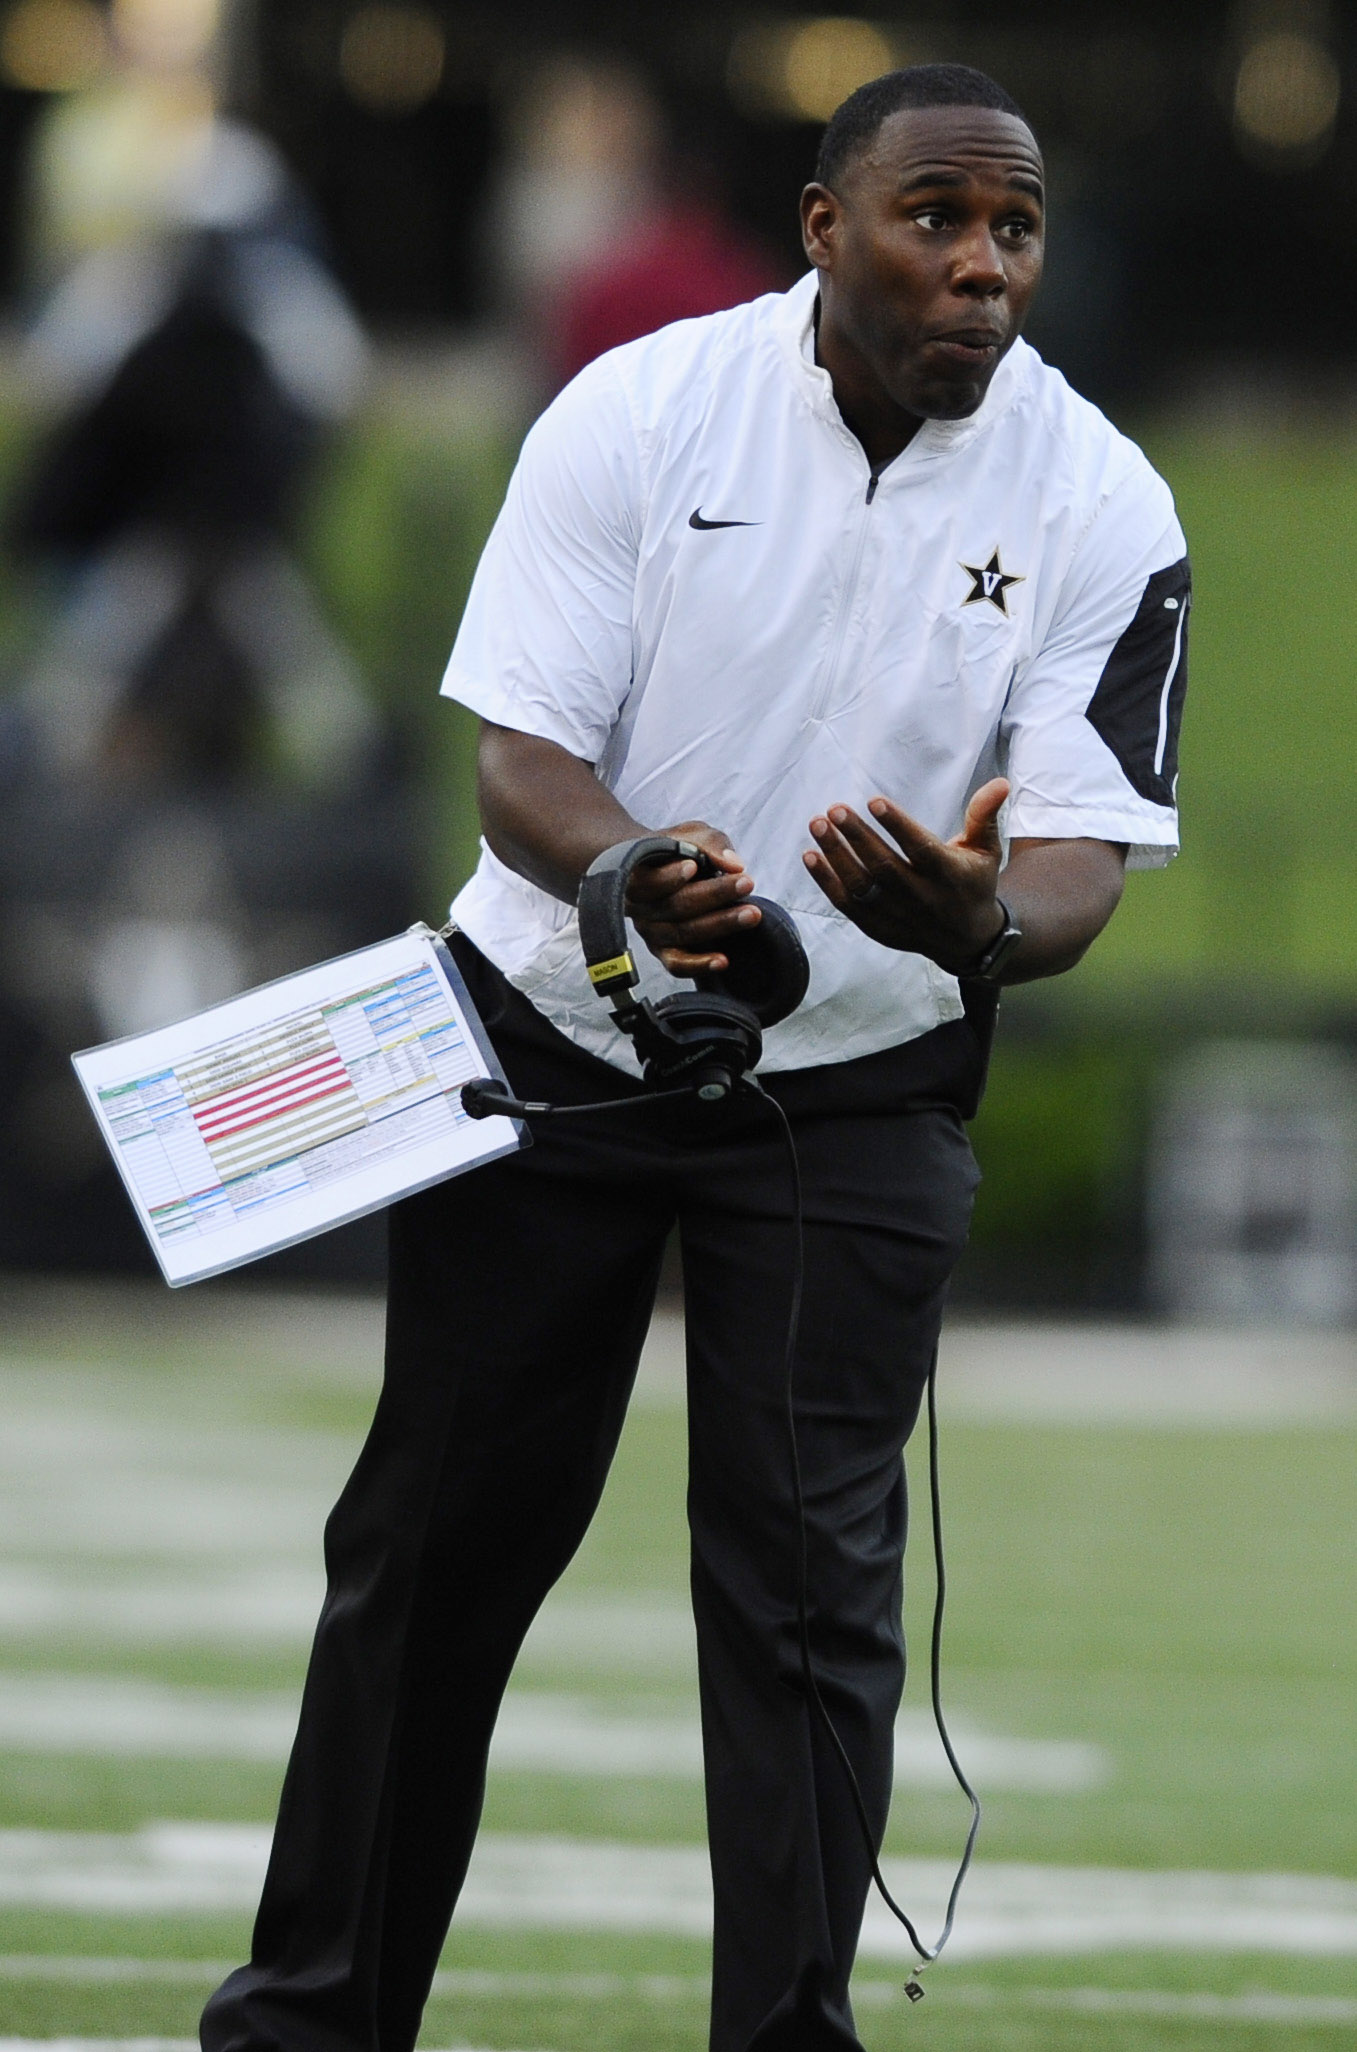 Vanderbilt's defense would be good enough to win the SEC East ... if it had an offense